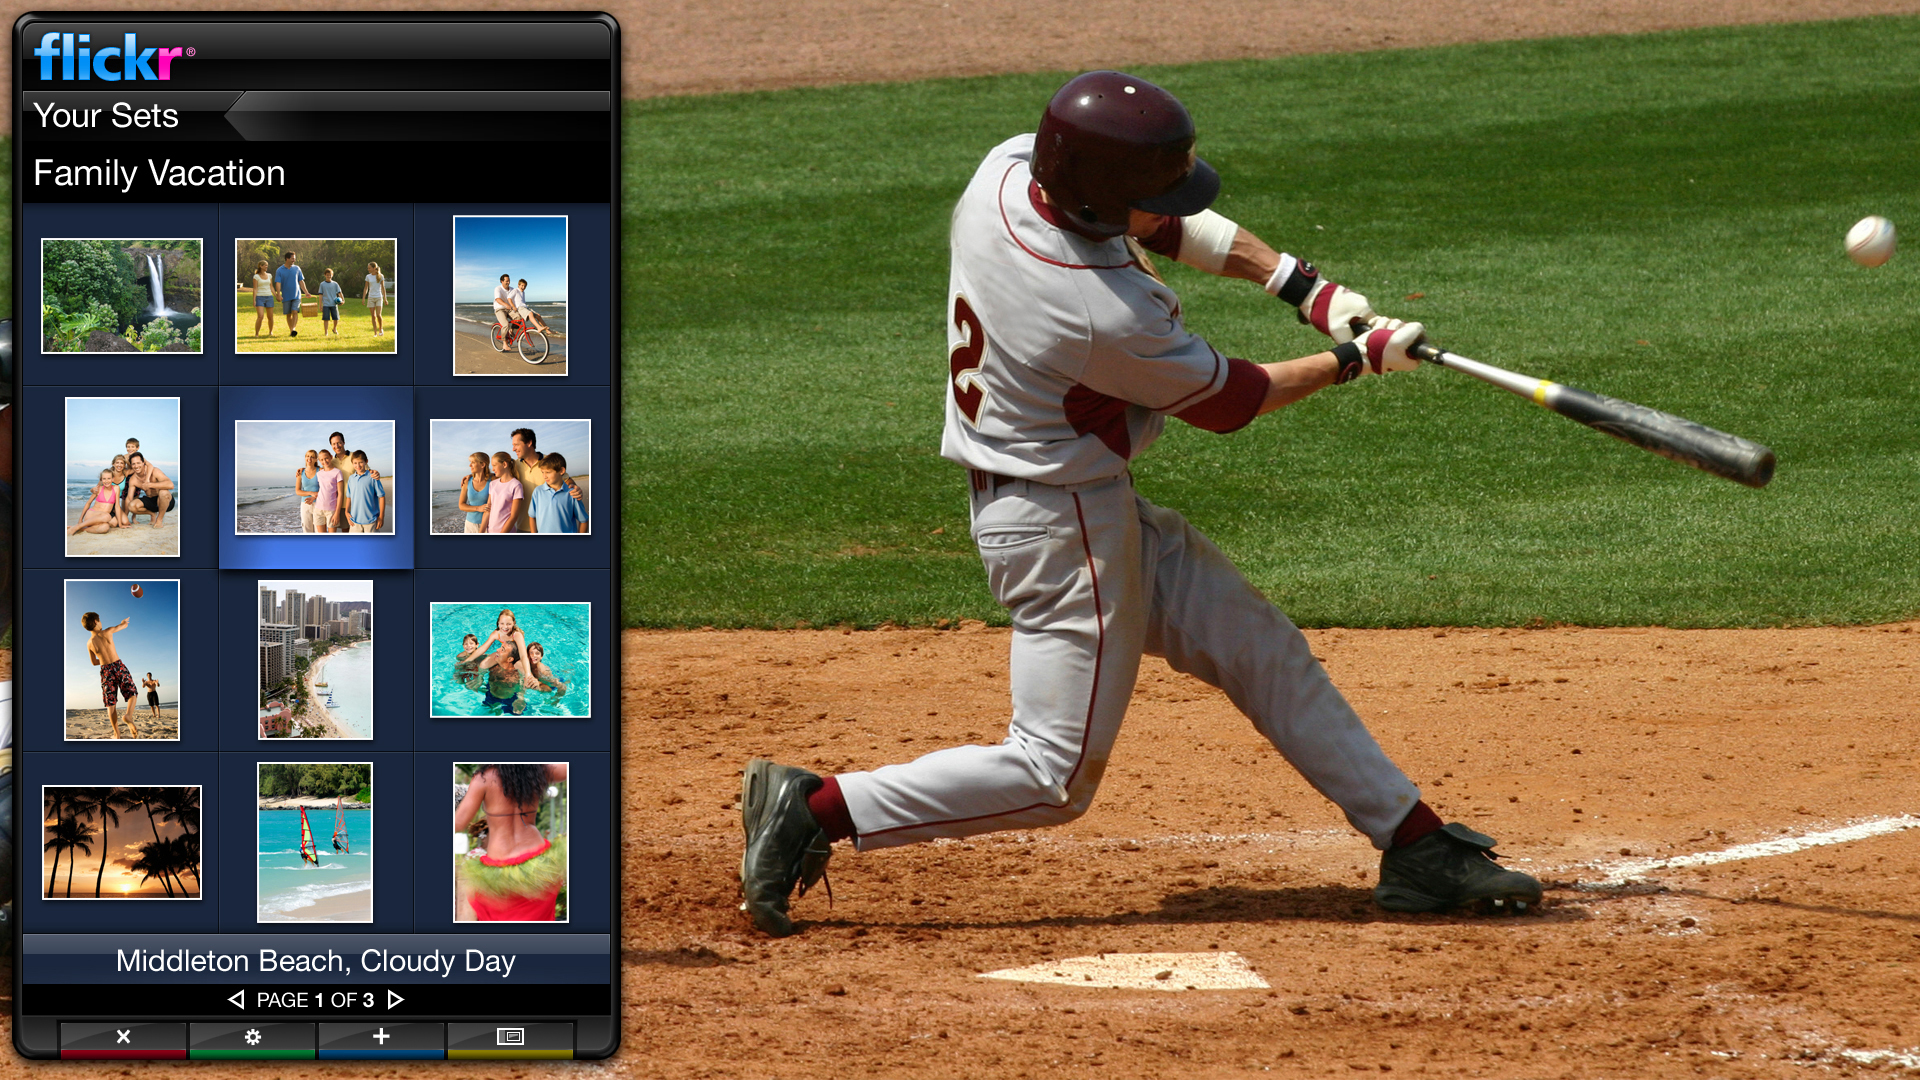 Yahoo's Widget Channel software lets TVs run network-enabled applications such as this one for Yahoo's Flickr photo-sharing service.